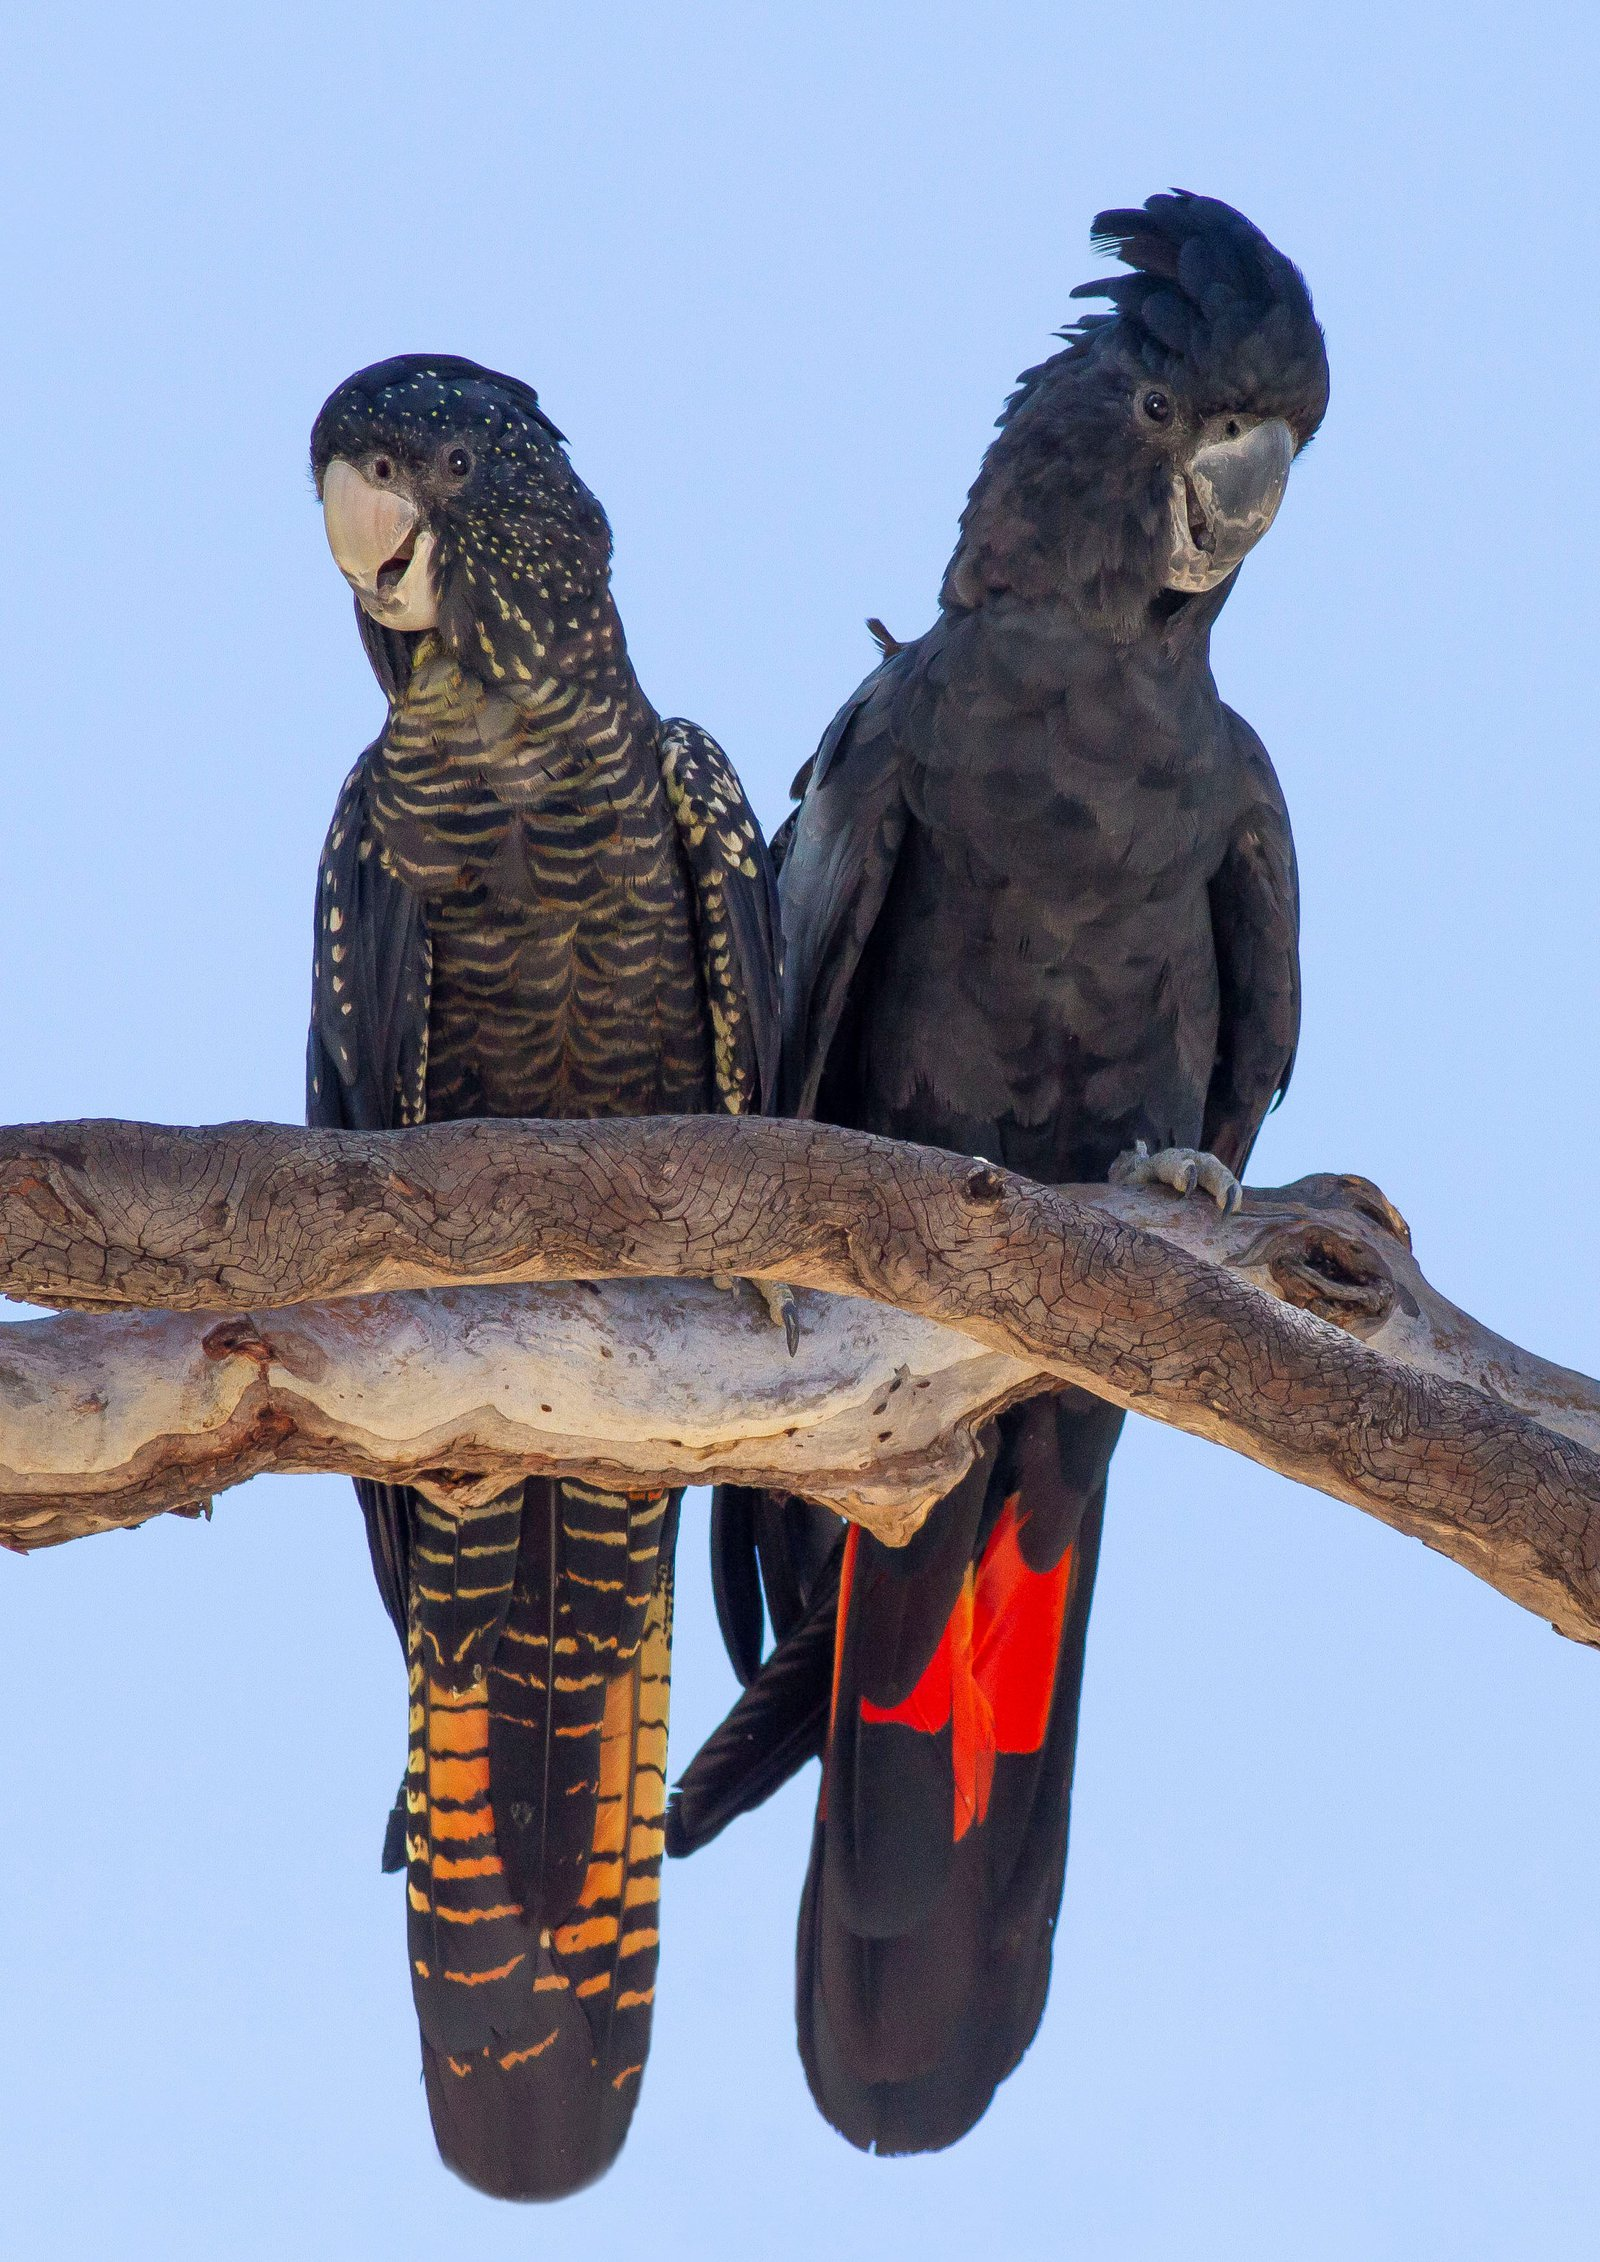 Red-tailed black-cockatoos (Calyptorhynchus banksii) displaying the distinct orange-yellow tail panels of a female (left) and the red tail panels of the male (right).